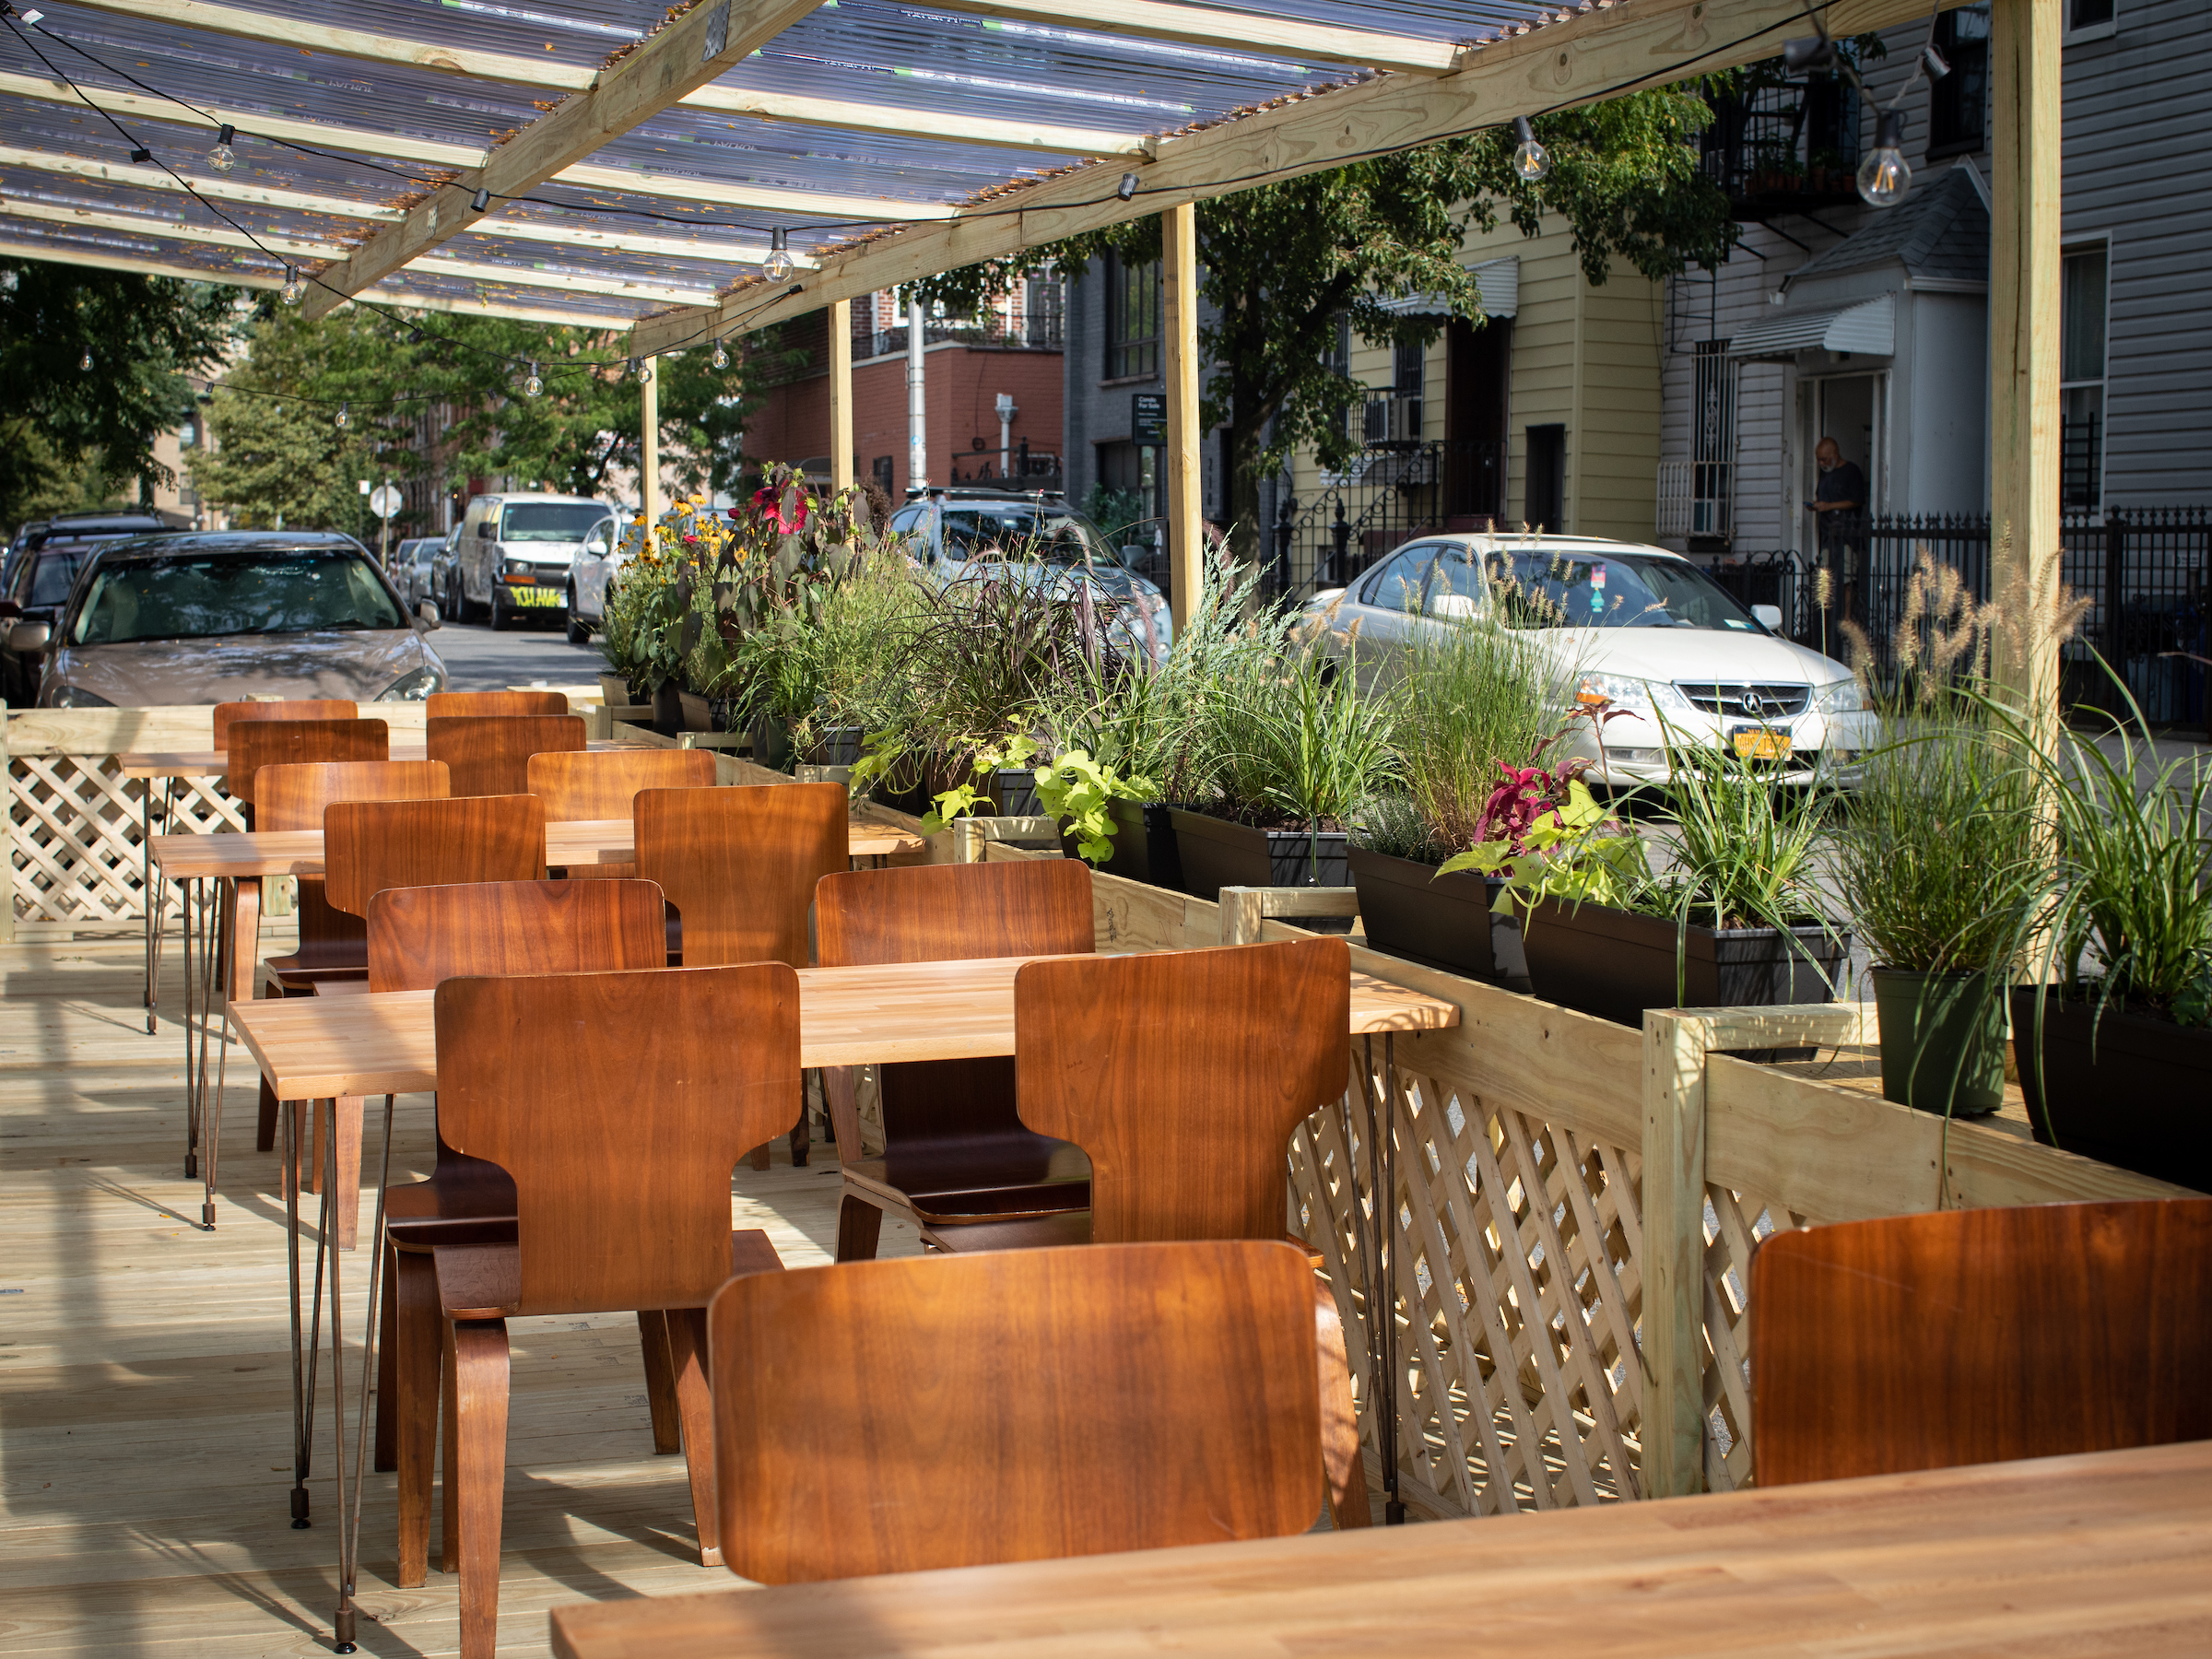 A restaurant's outdoor seating area, with a few tables, wooden chairs, and cars visible in the background